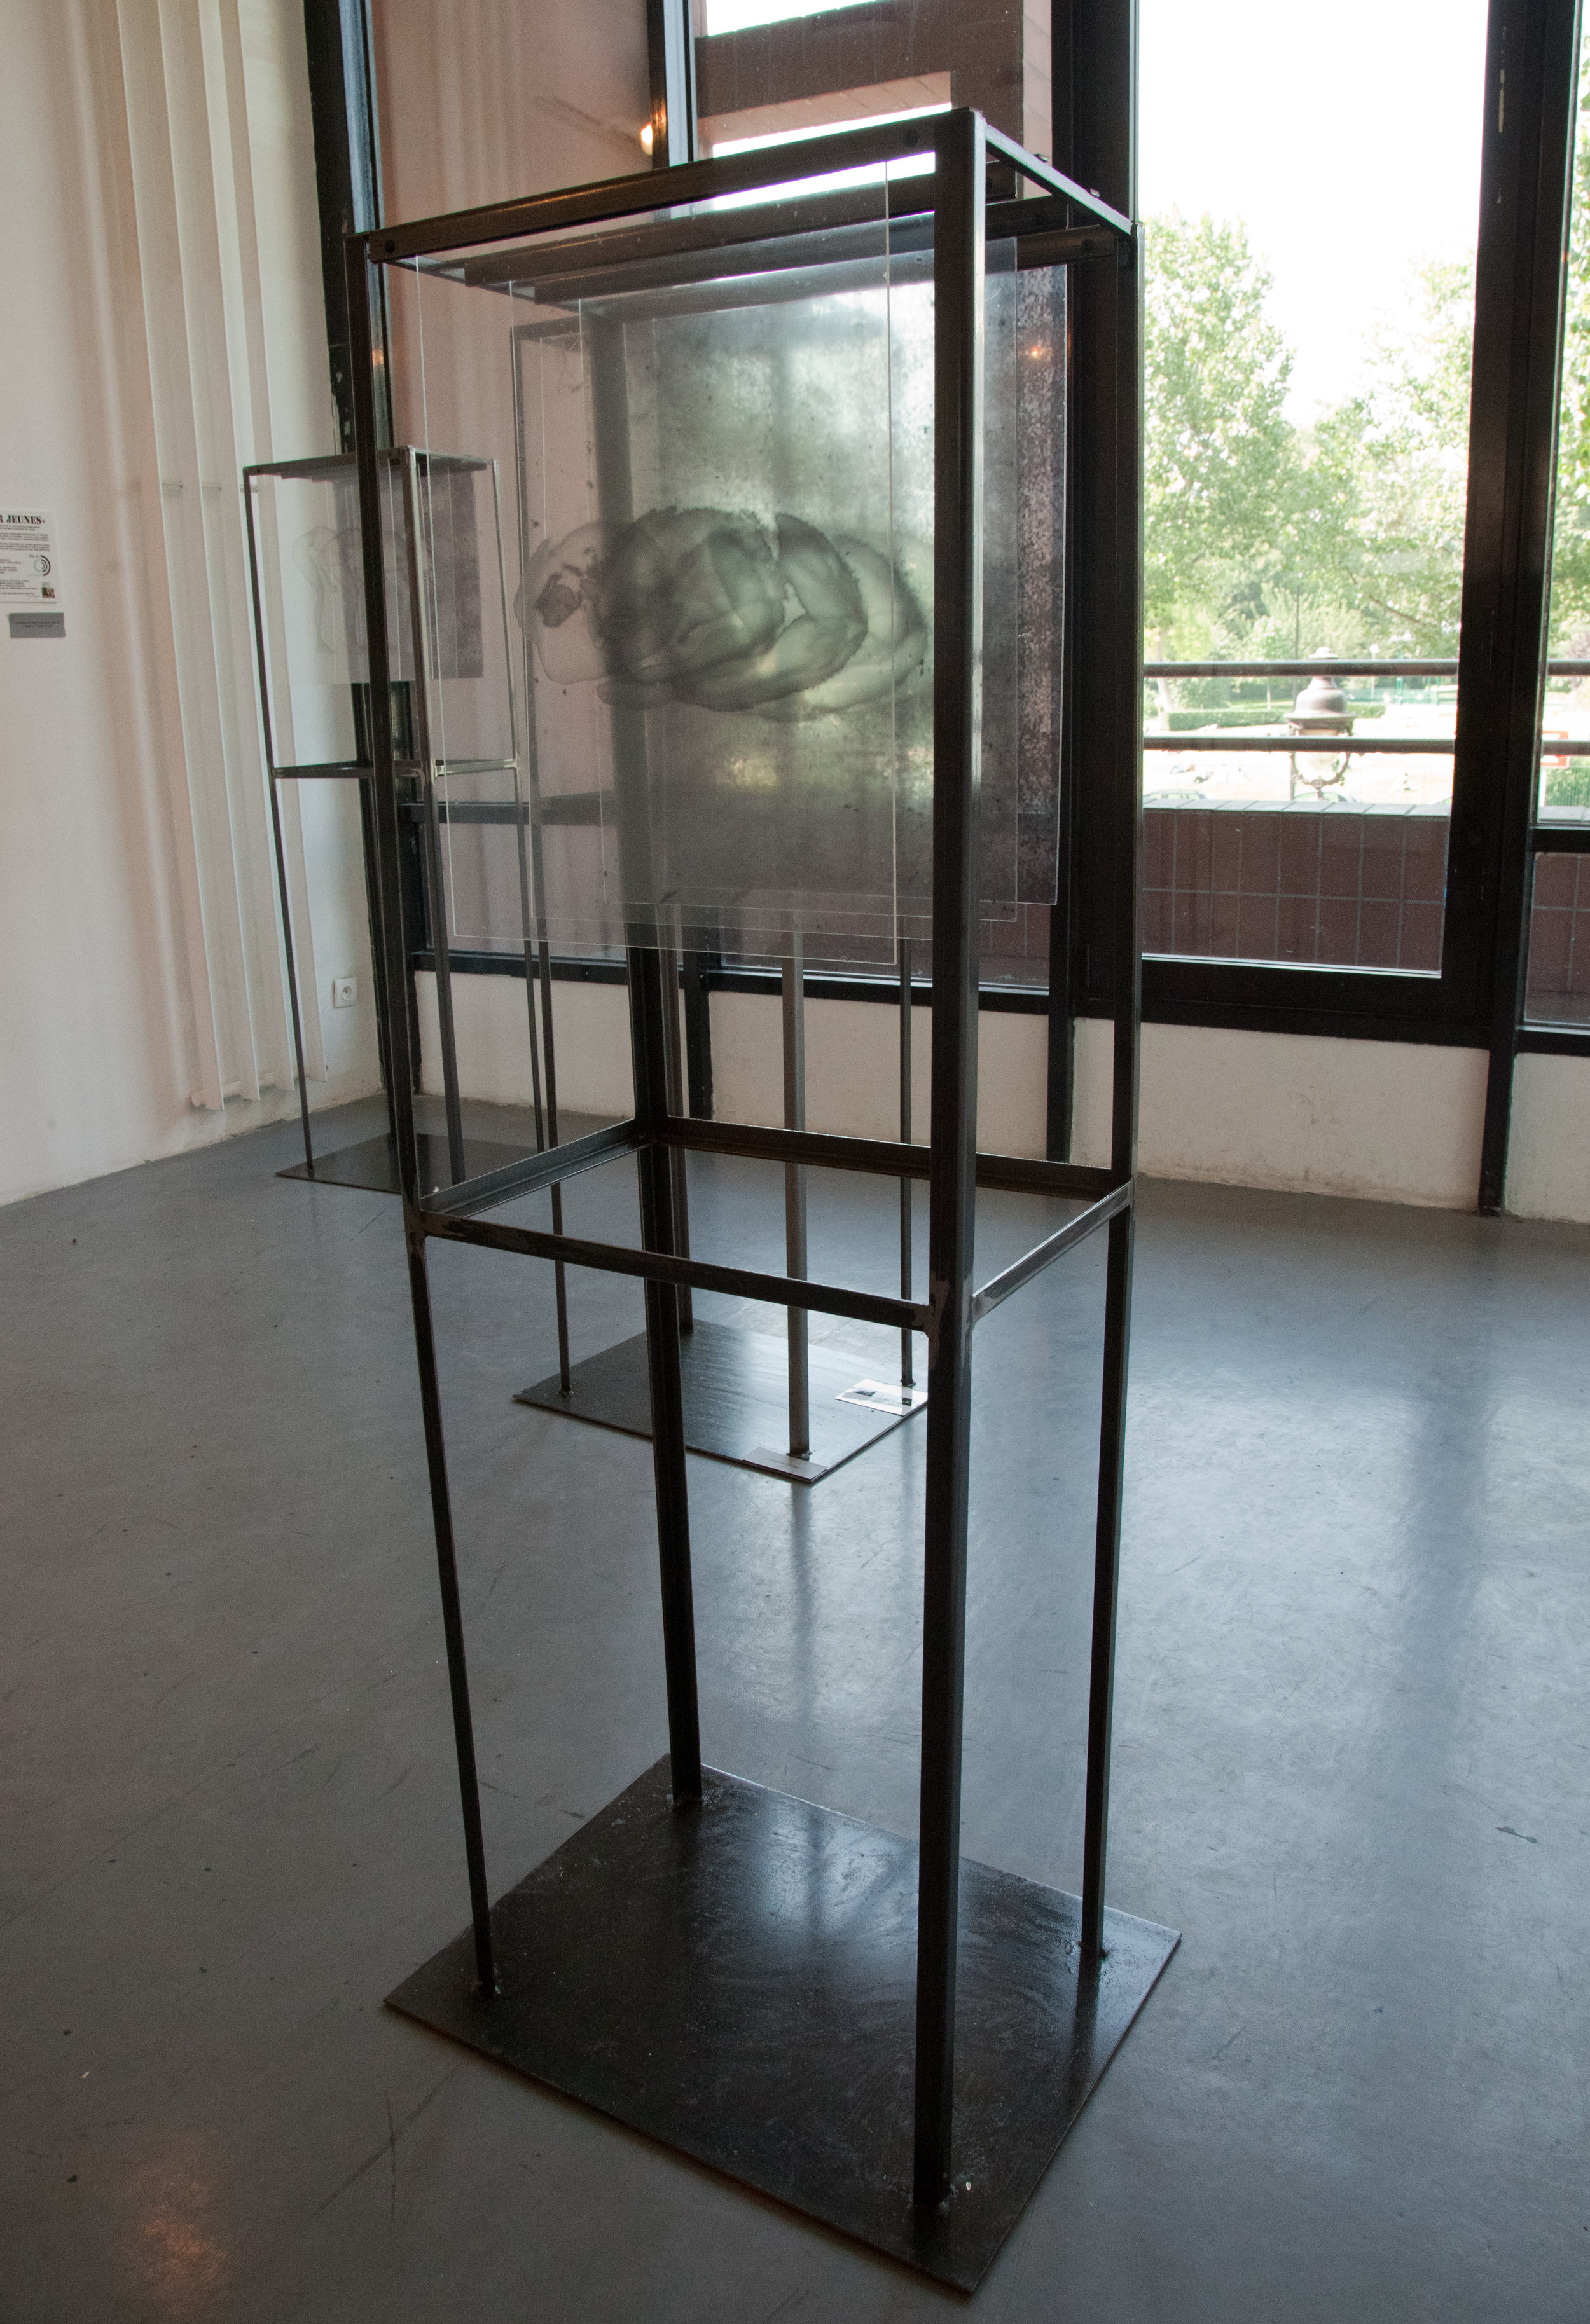 florence_cardent_diffraction 3_sculpture photo_1997-2020.JPG